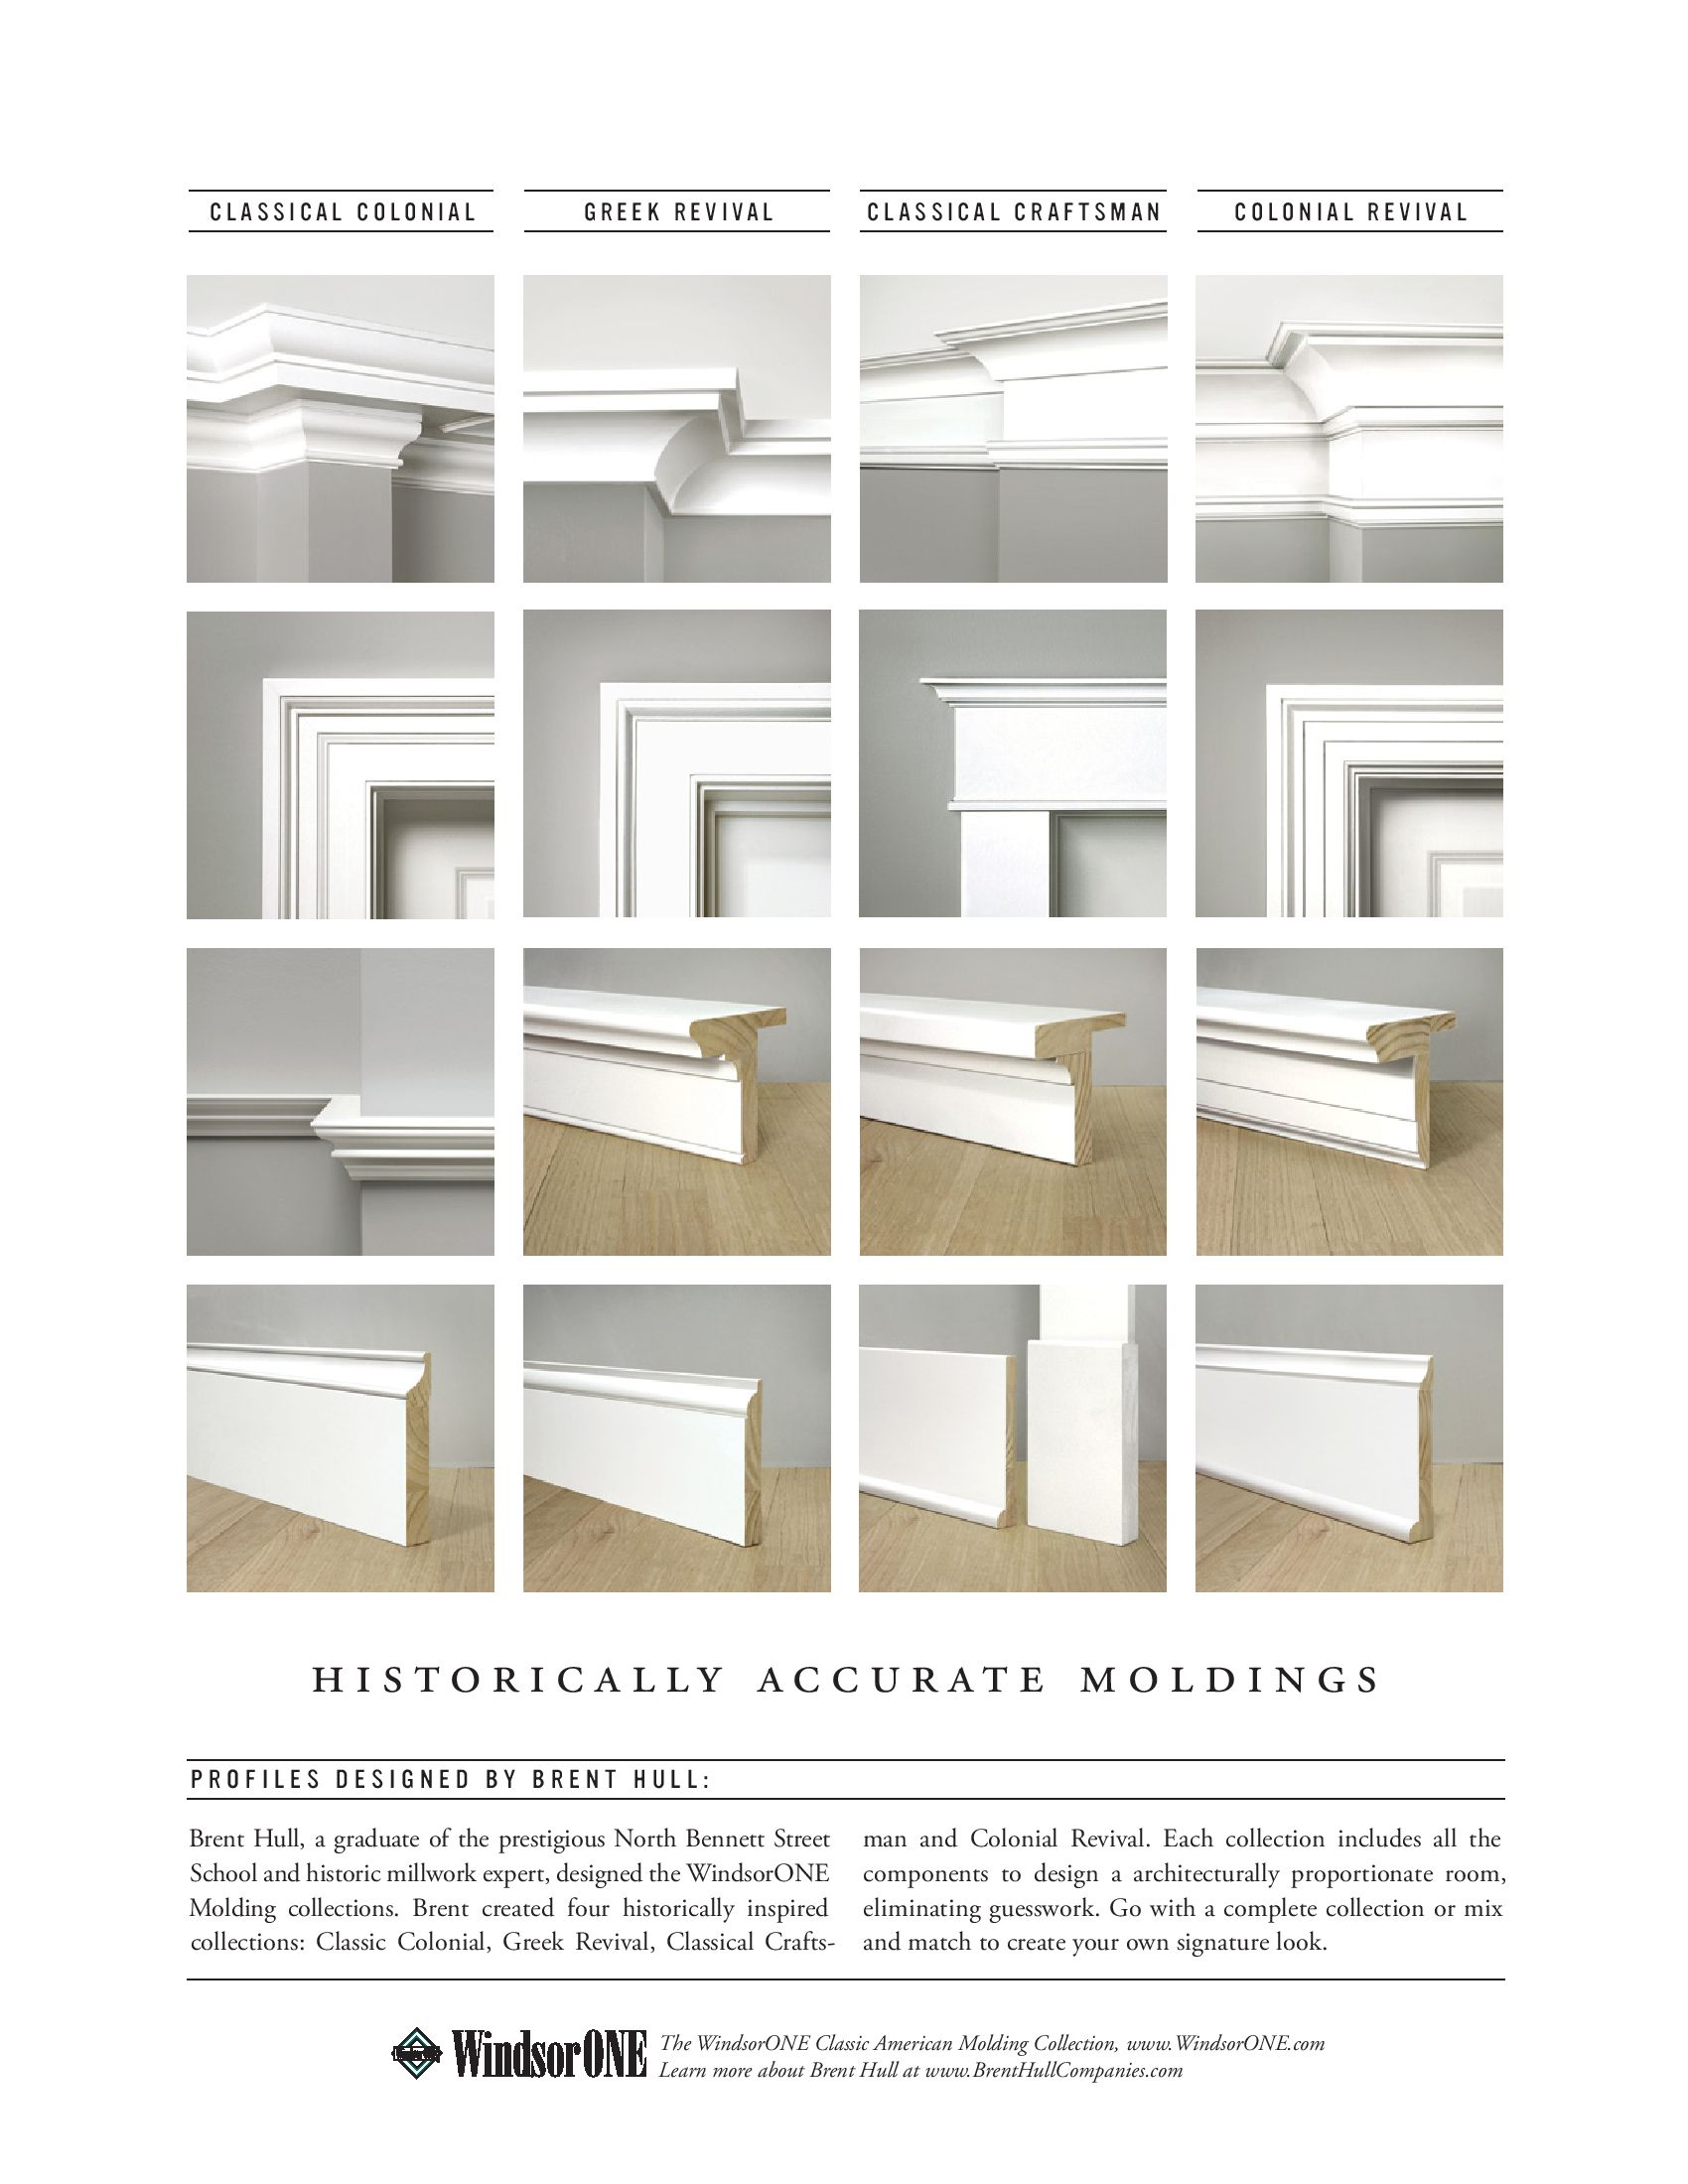 WindsorONE - Historically Accurate Molding